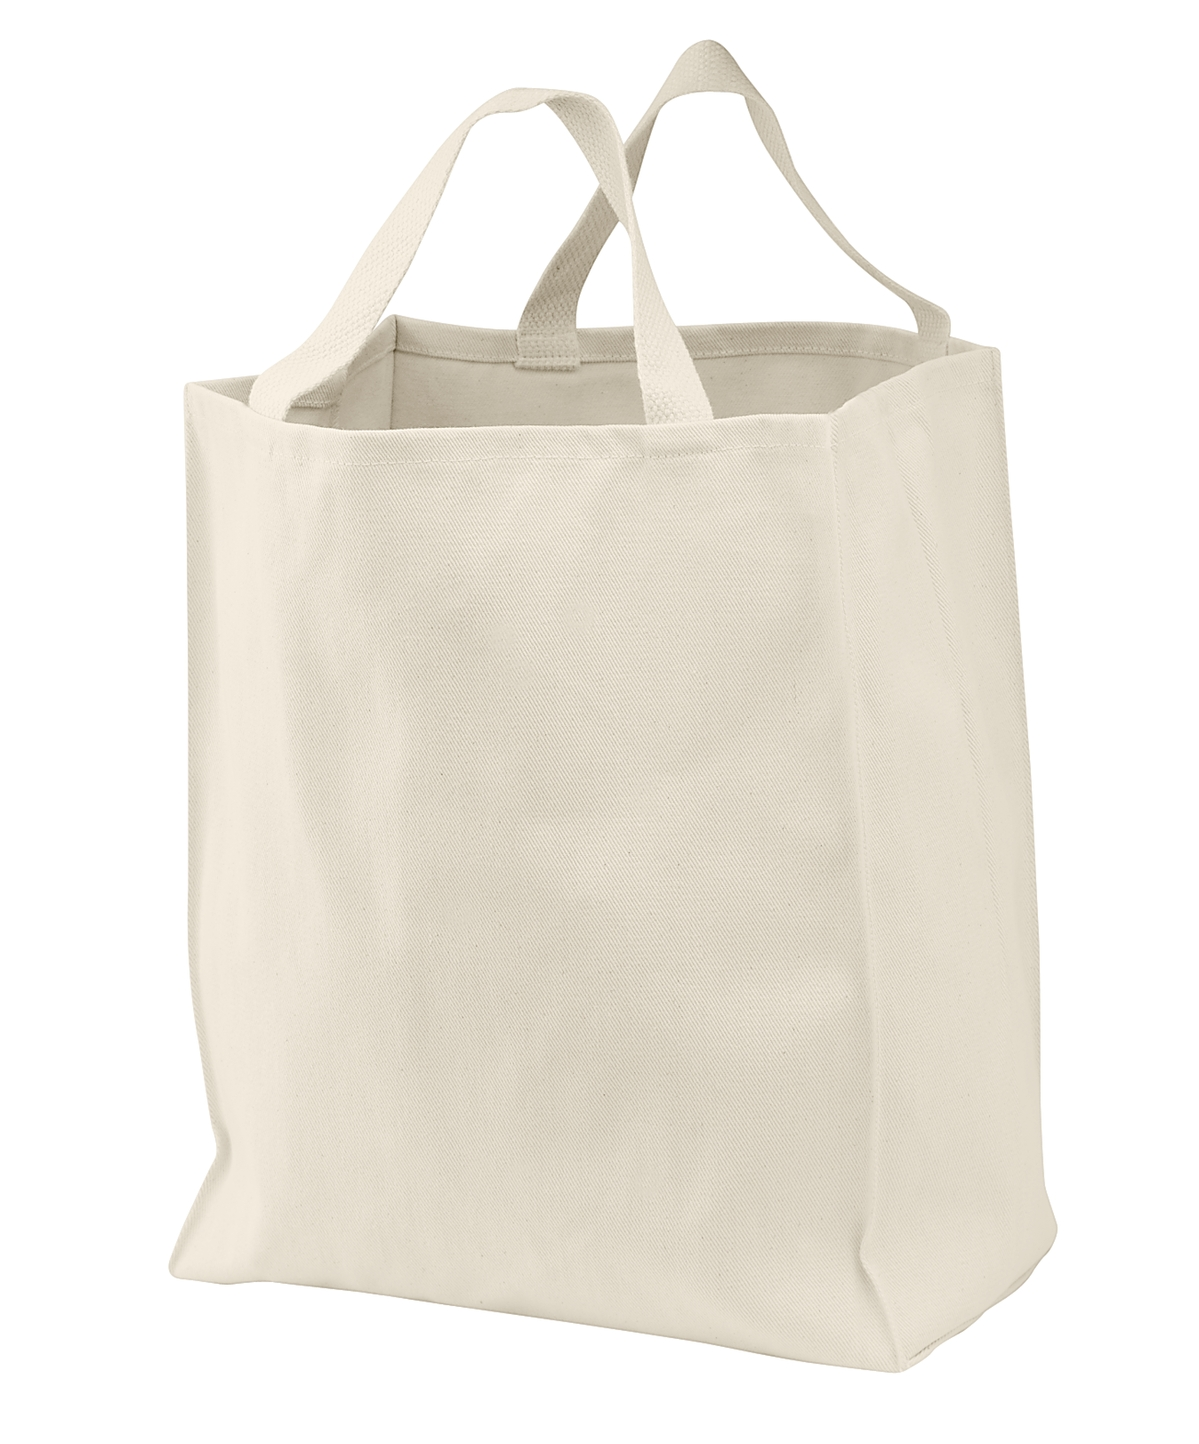 Port Authority ®  Grocery Tote.  B100 - Natural